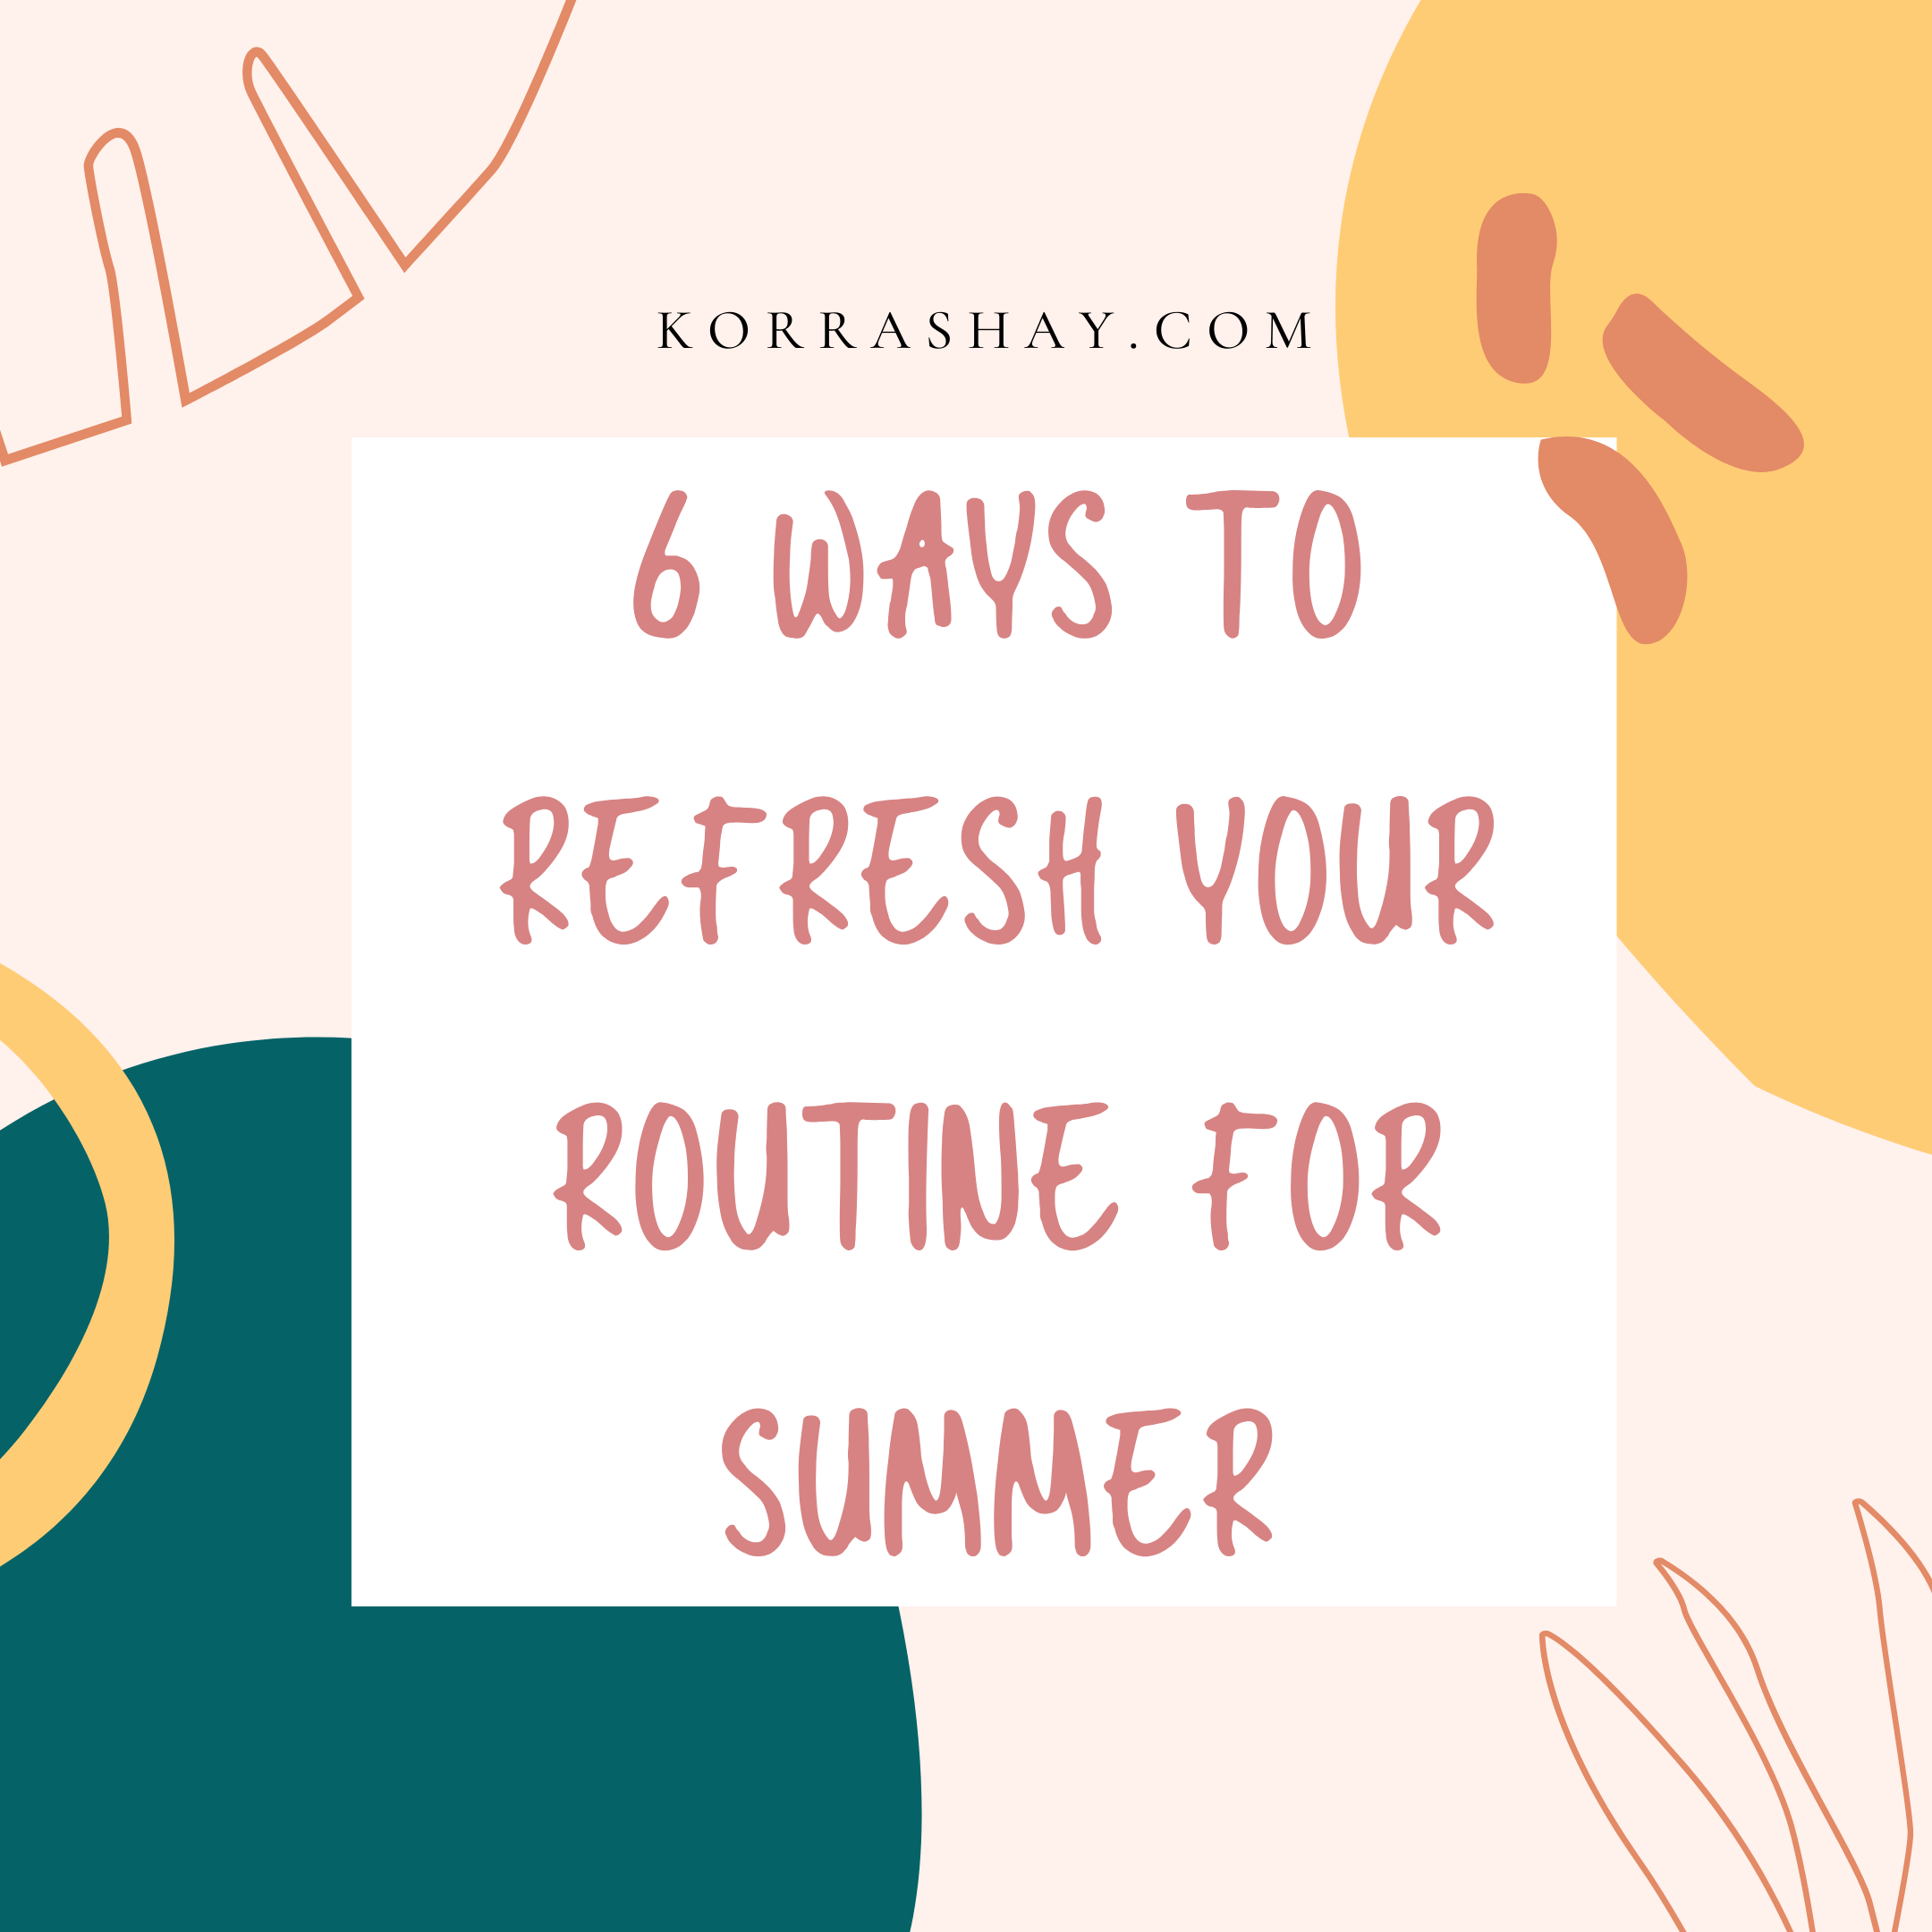 6 Ways To Refresh Your Morning Routine For Summer